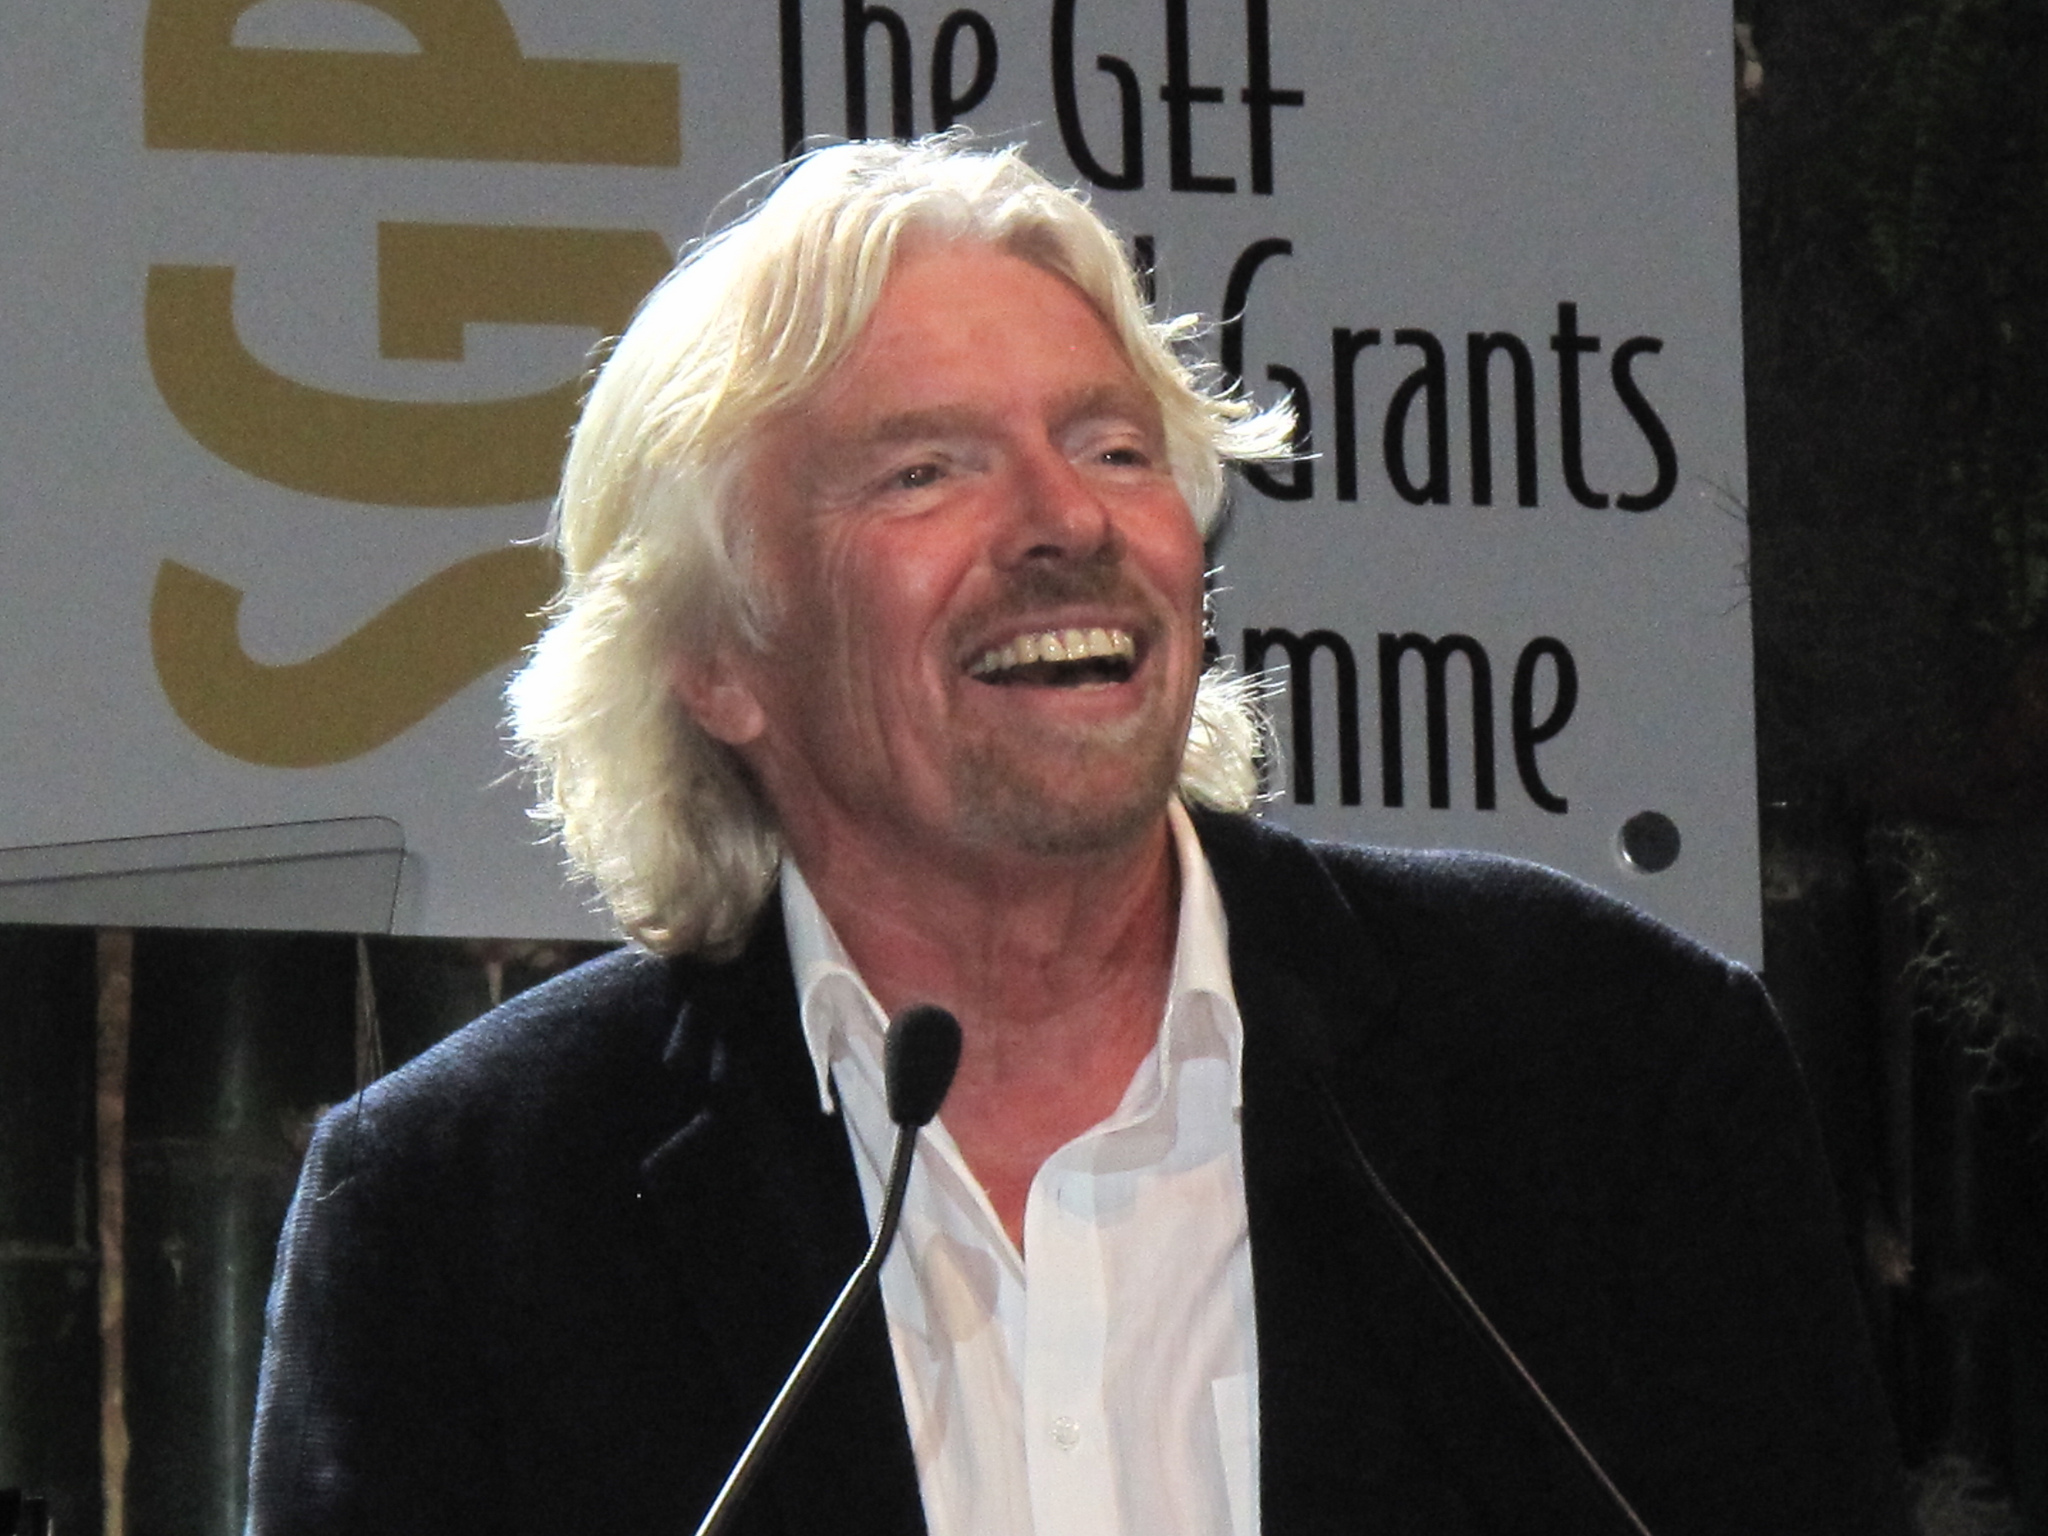 Richard Branson received the Cannabis Culture Award on behalf of the Global Commission on Drug Policy in 2012 (CC. UNclimatechange)